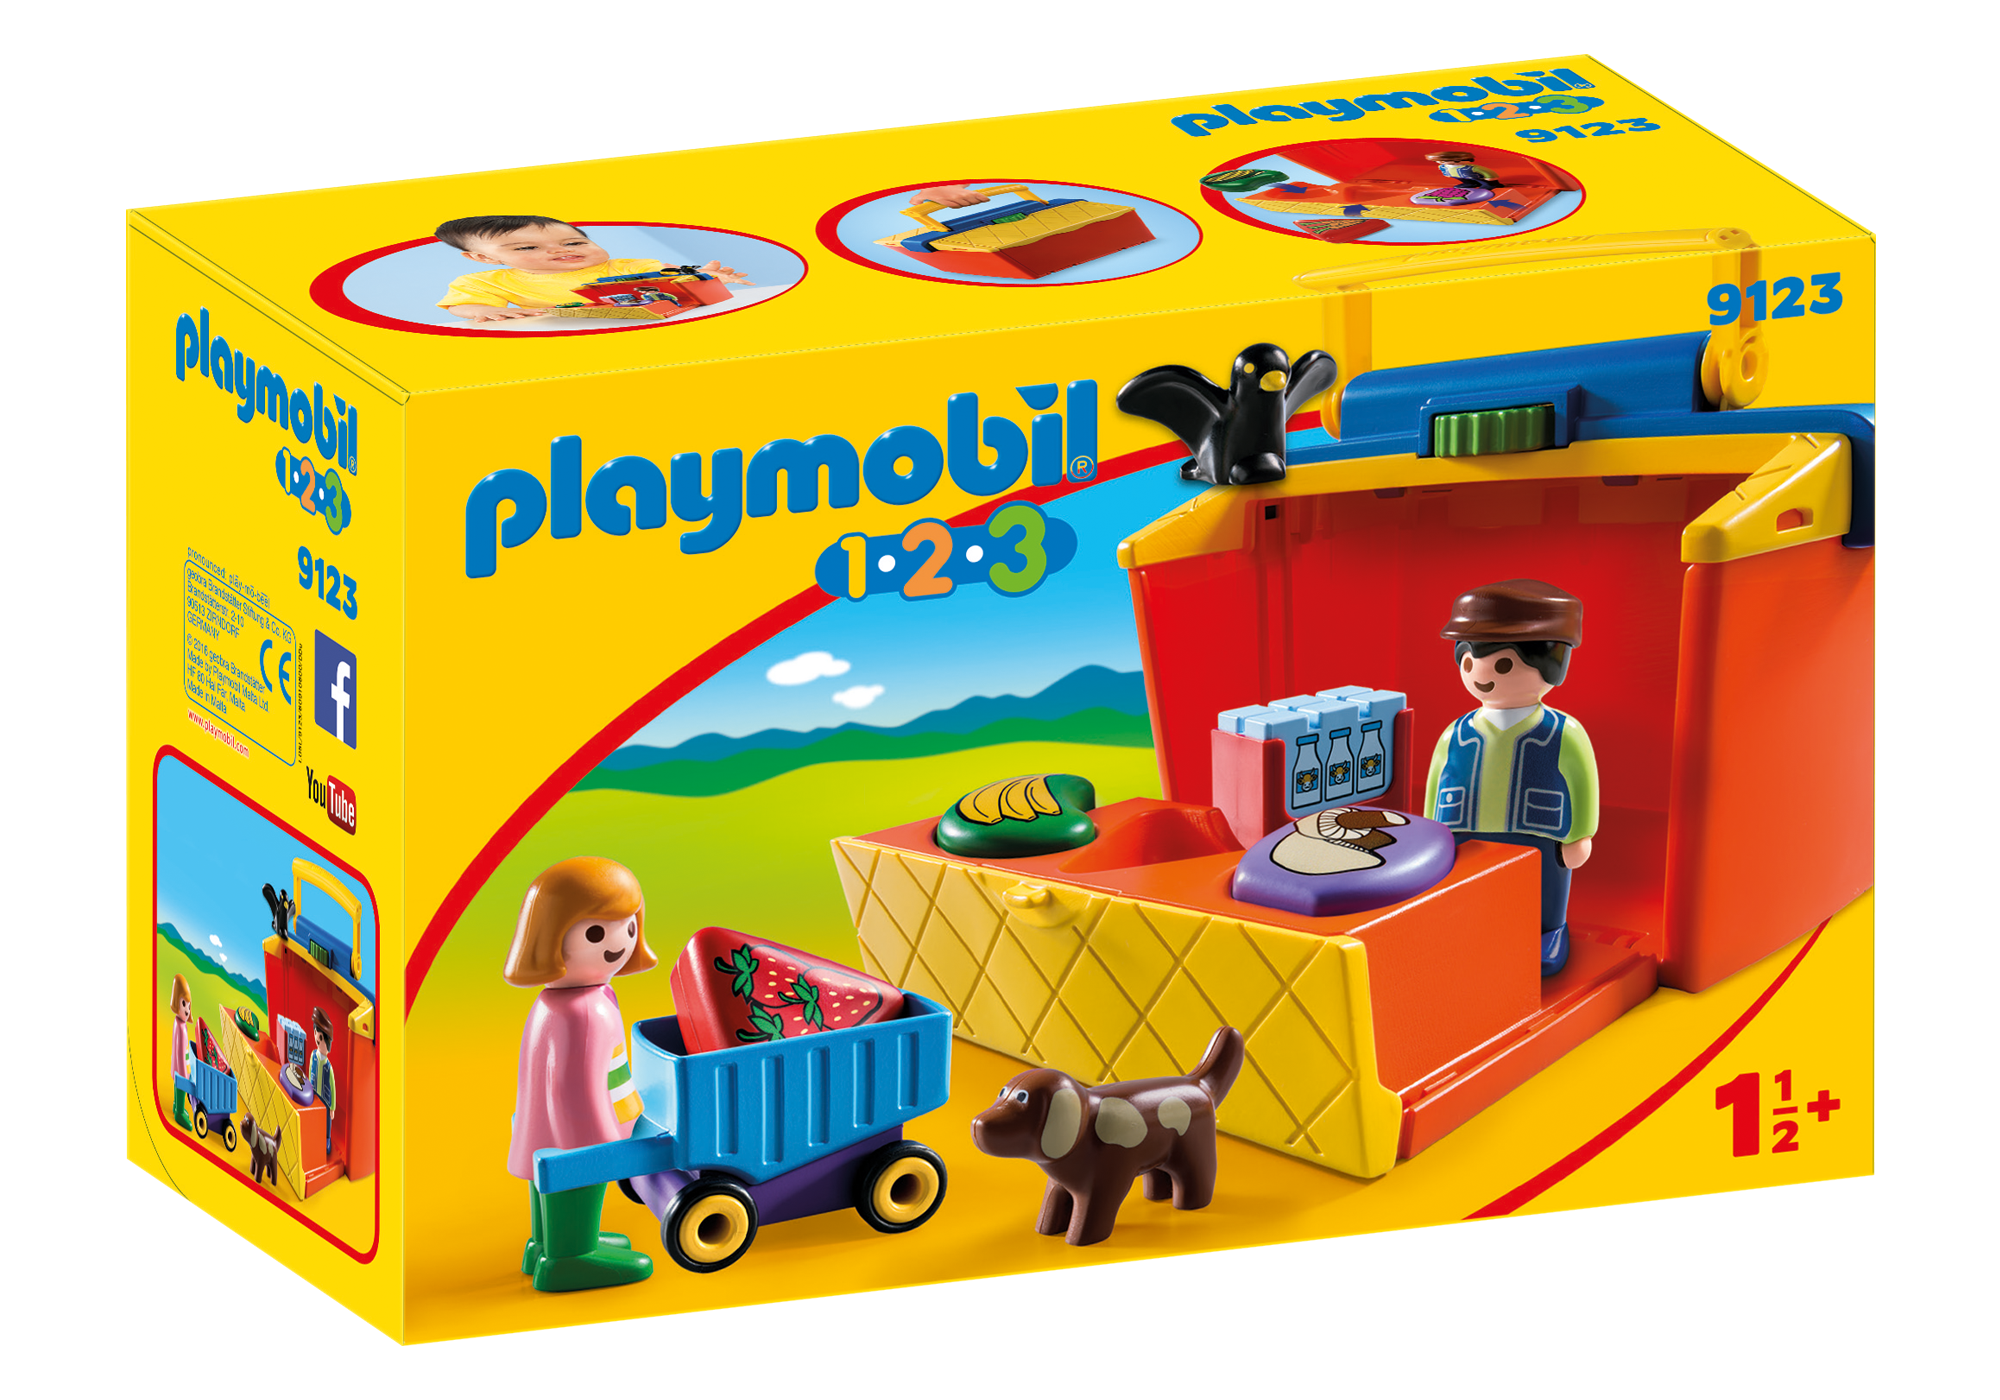 http://media.playmobil.com/i/playmobil/9123_product_box_front